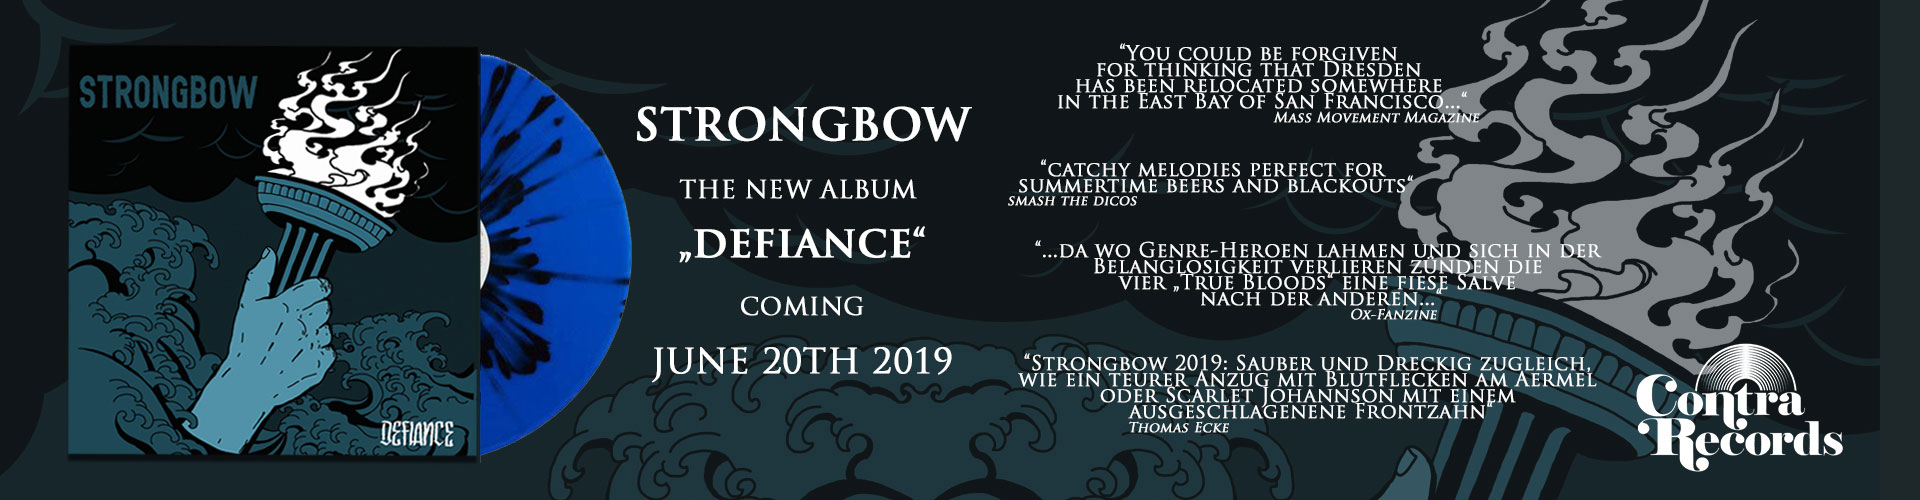 Strongbow-Defiance